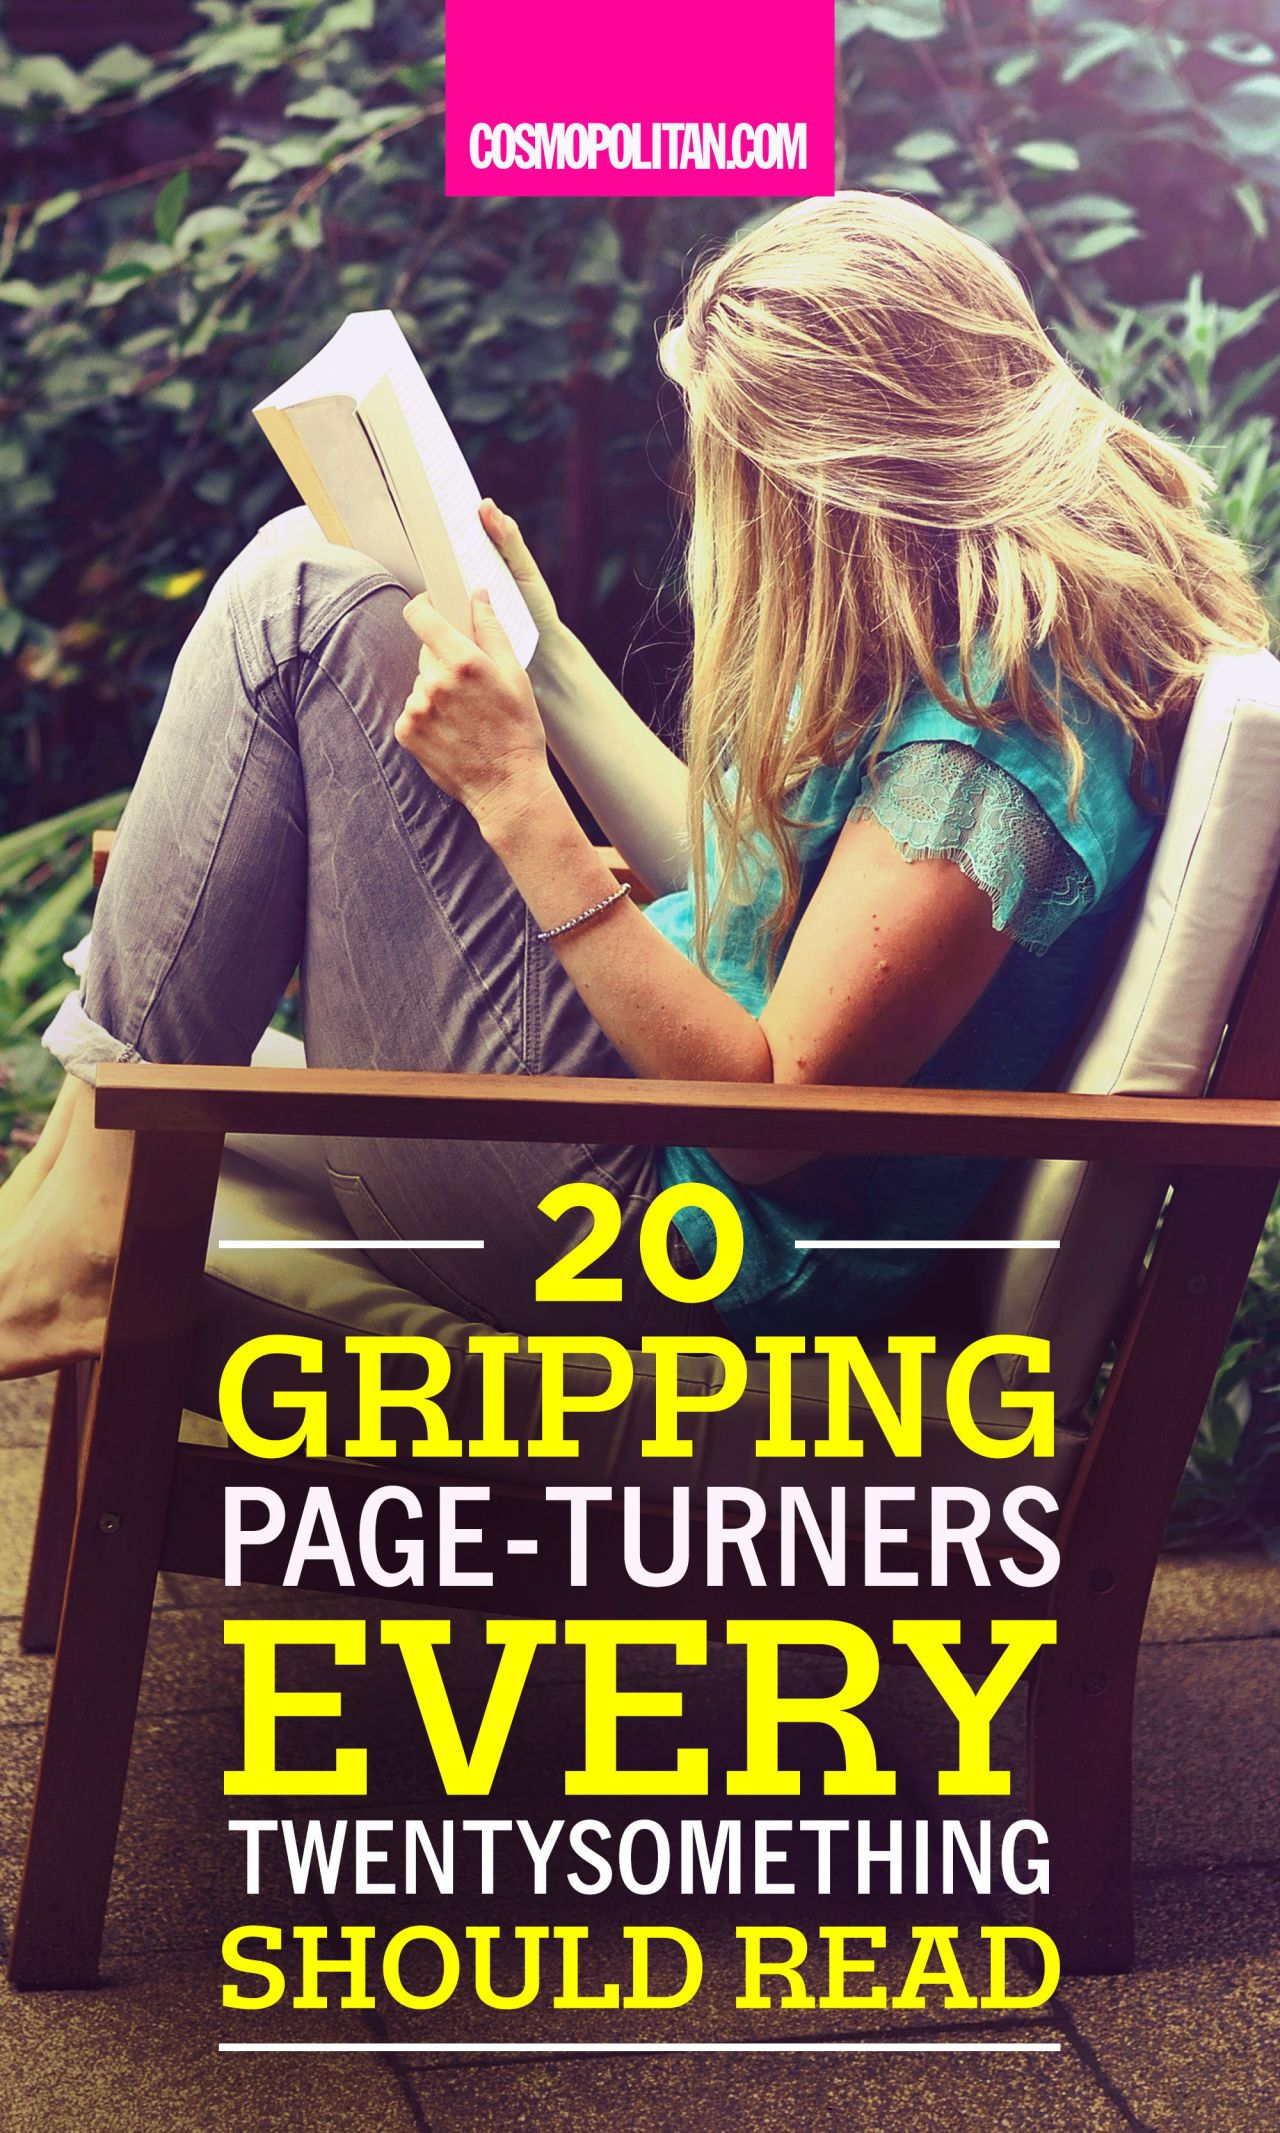 20 Gripping Page-Turners Every Twentysomething Woman Should Read